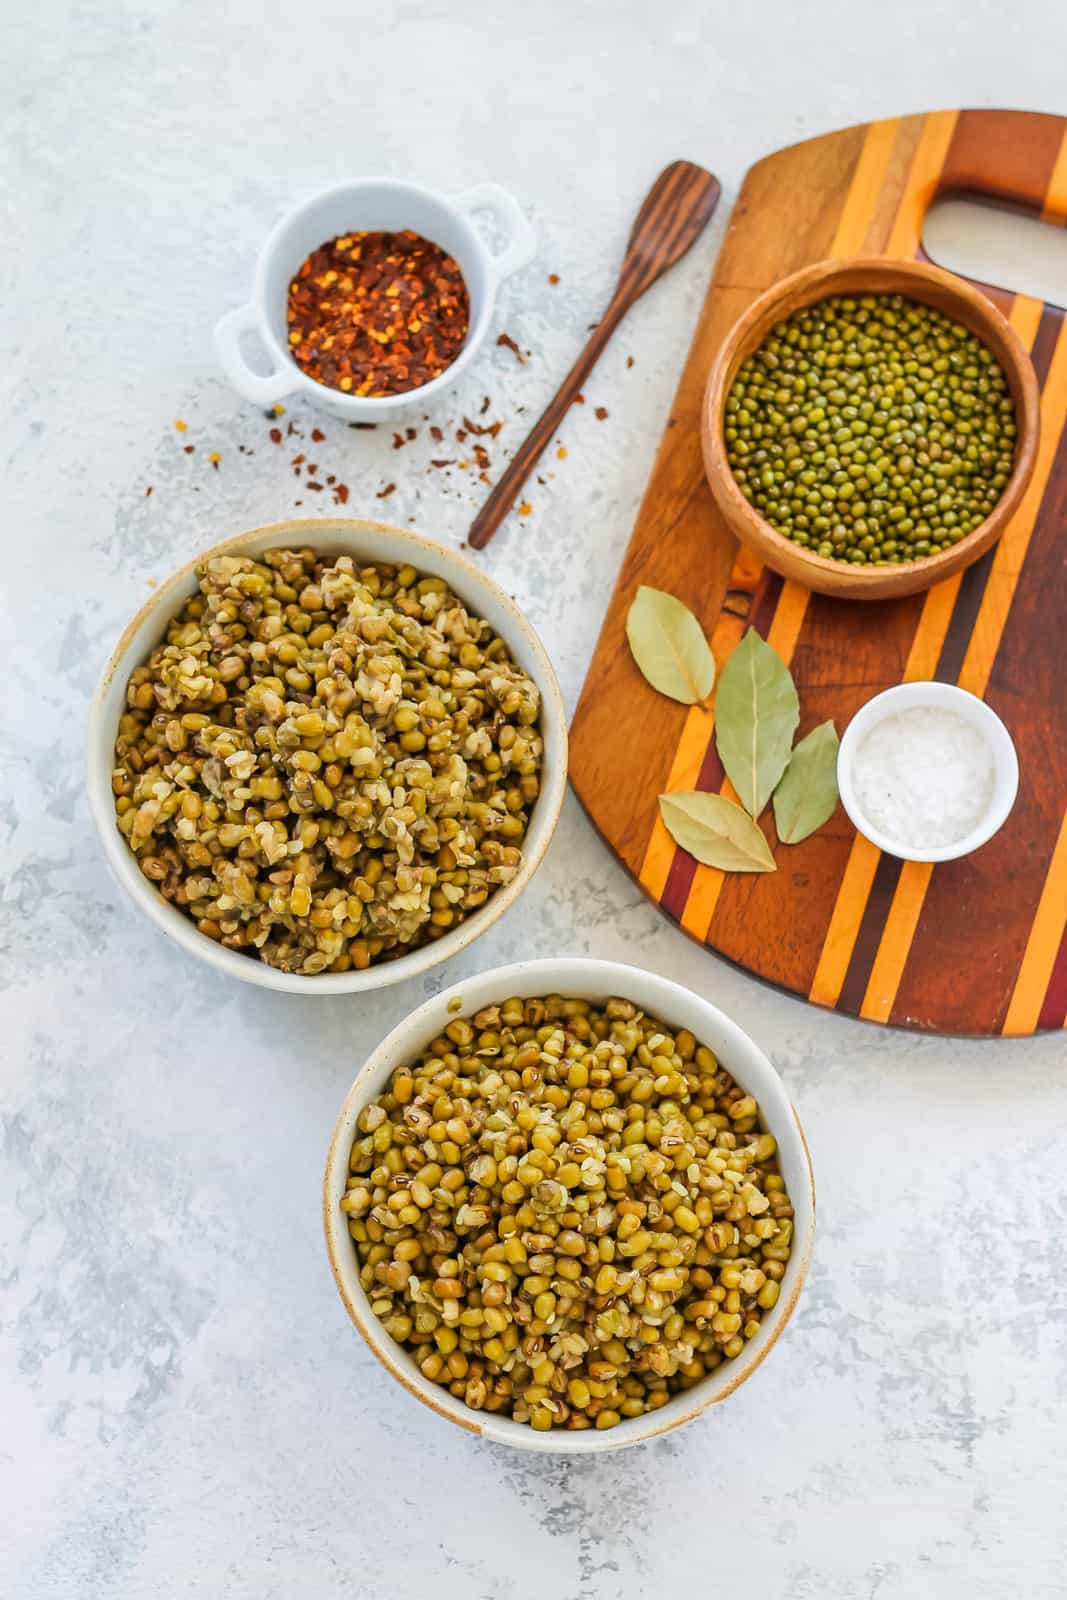 two bowls of cooked mung beans on a grey background with some herbs and spices to the side